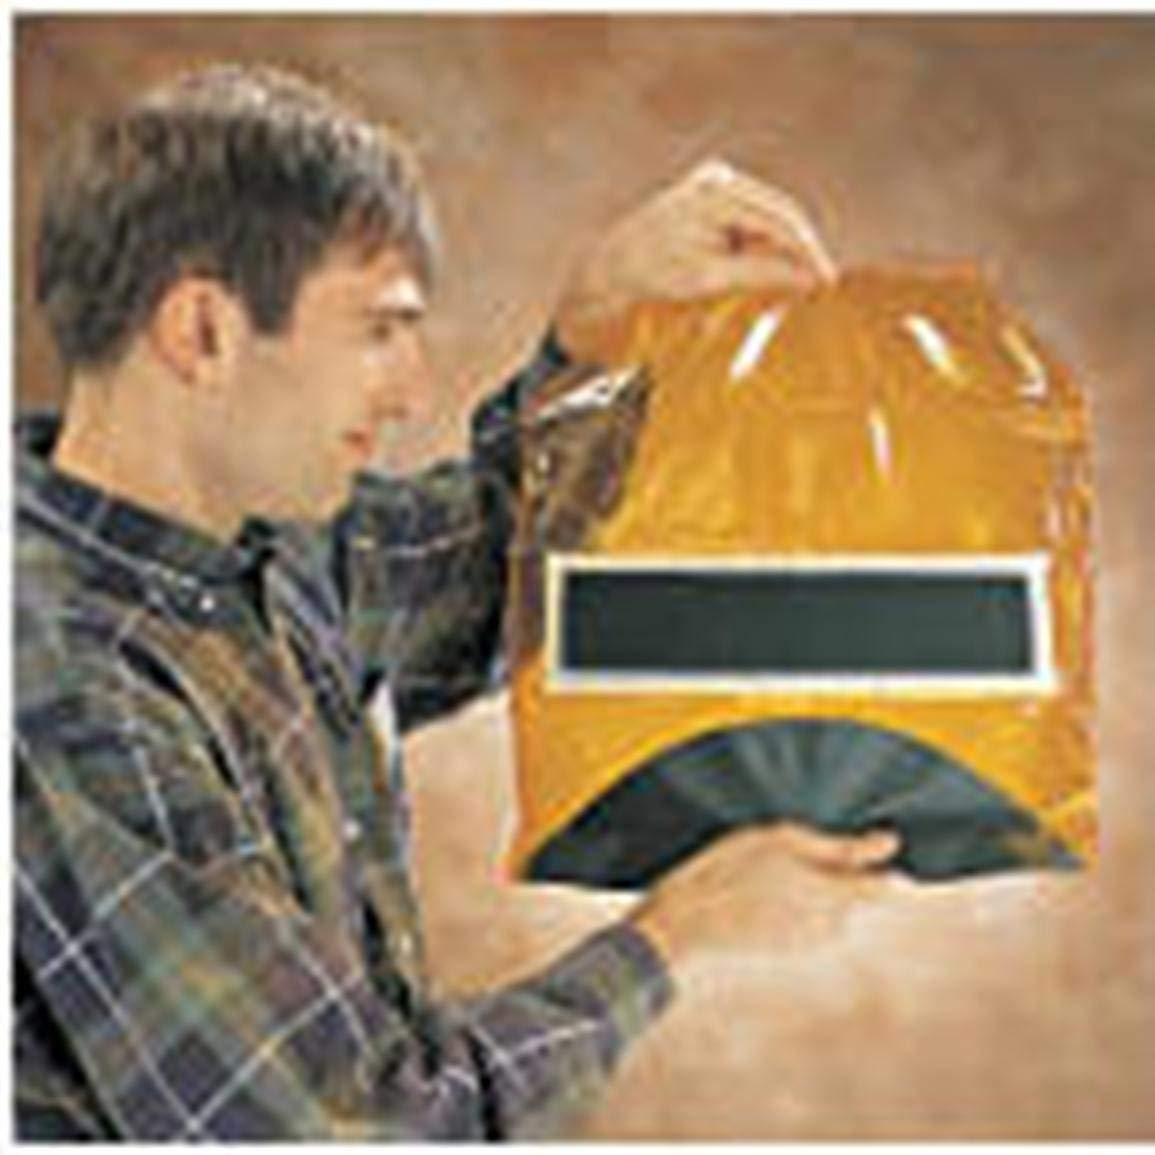 Pocket Smoke Mask for Fire Escape (4) by First Aid Global (Image #3)